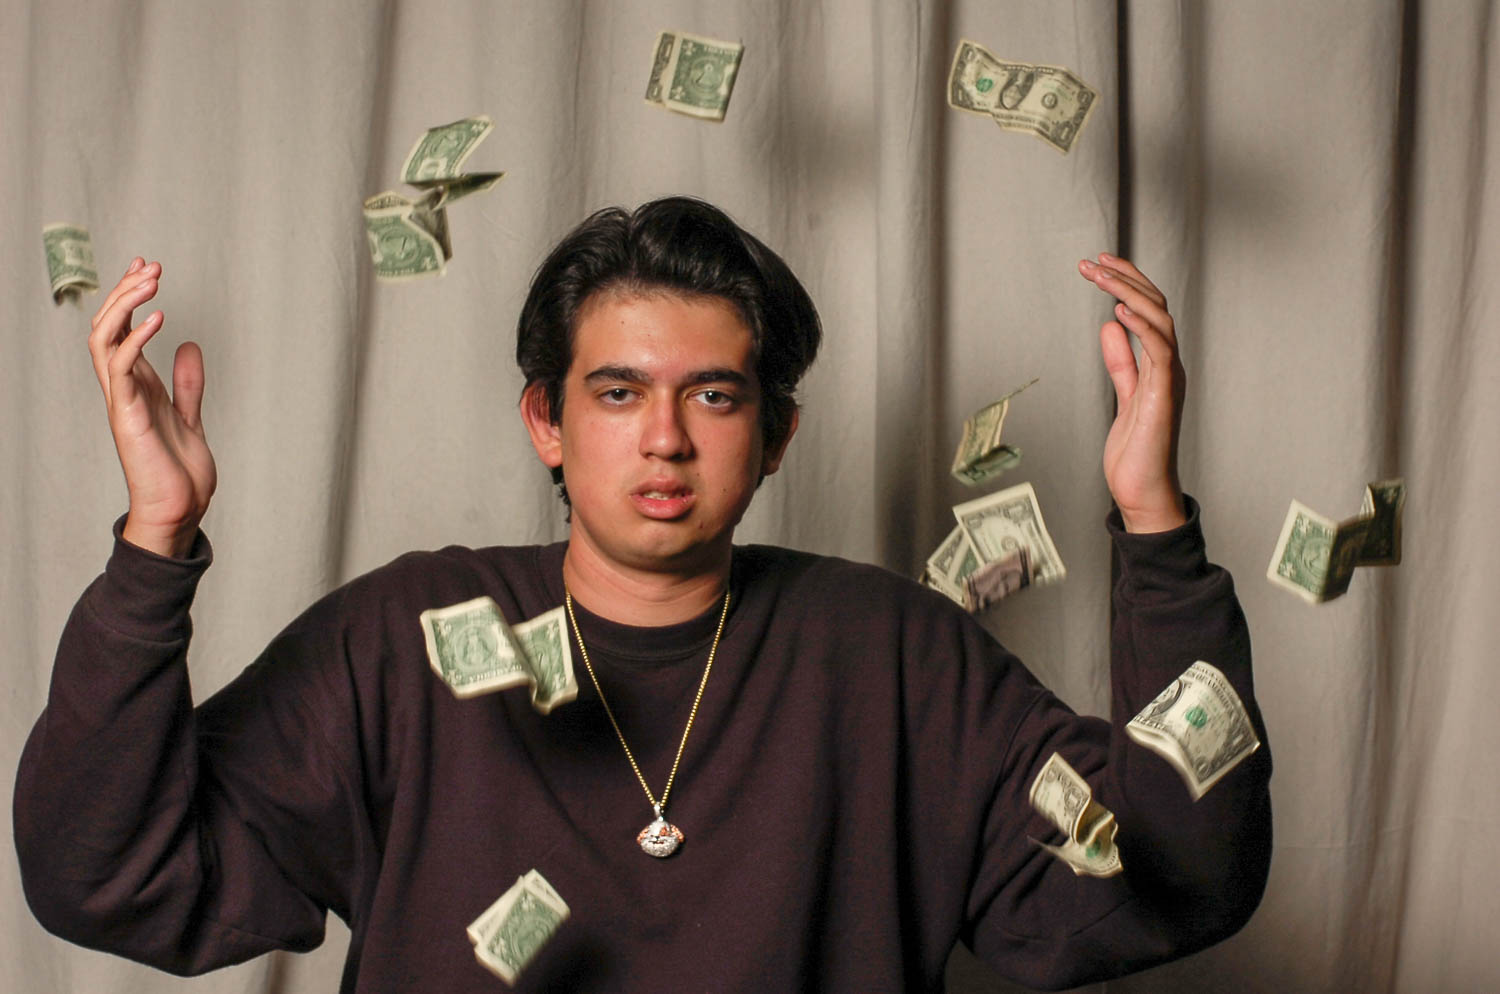 """Alec Tighe (12) showers in dollar bills after releasing his first debut album, """"Alectober,"""" on Soundcloud, October 25."""